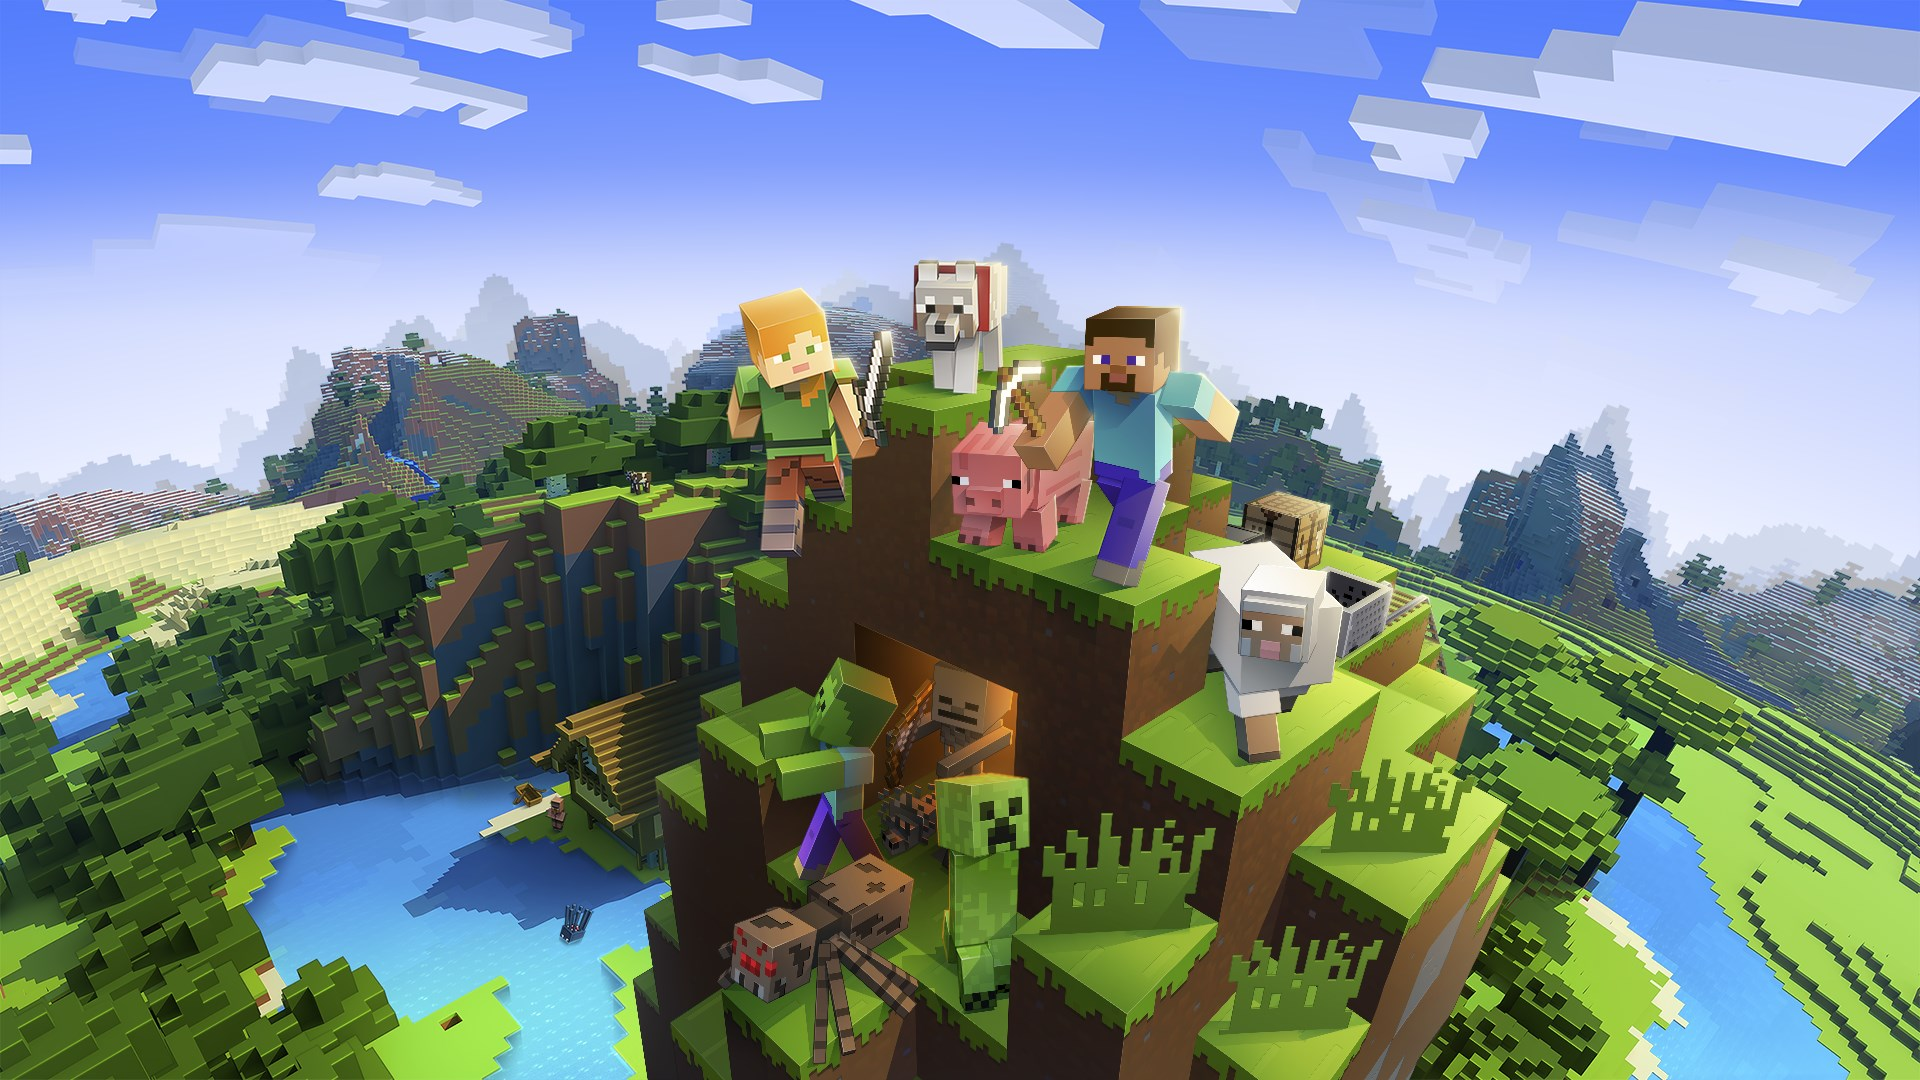 minecraft pocket edition roblox xbox 360 video game cape Buy Minecraft Microsoft Store En Gb